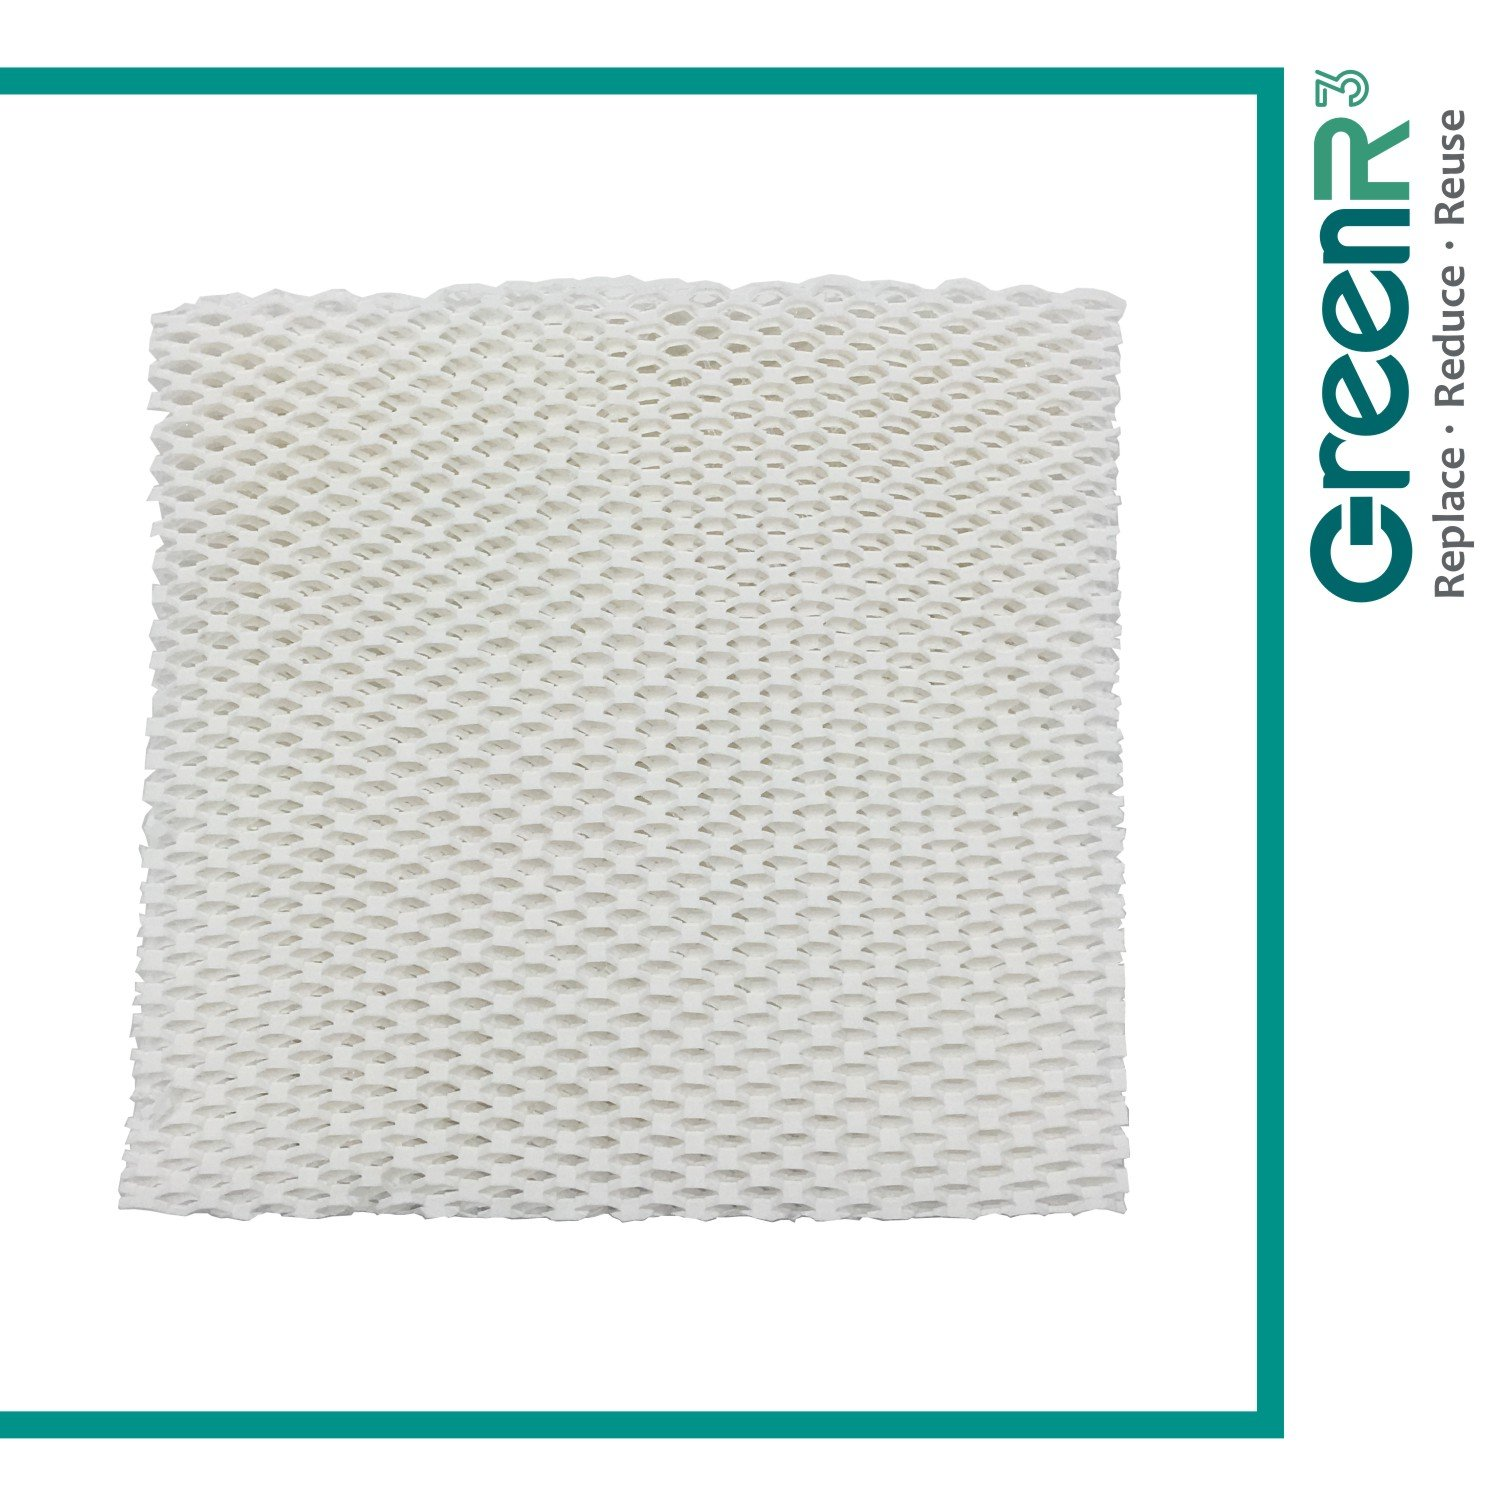 GreenR3 1-PACK Wick Filters Humidifiers for Honeywell HAC-801 fits Honeywell HCM-3060 HCM-88C HAC-801 Arctic Stream DA-1005 Kenmore 14108 Kenmore Duracraft DU3-C AC-801 DH-799 HCM-3060C Part and more